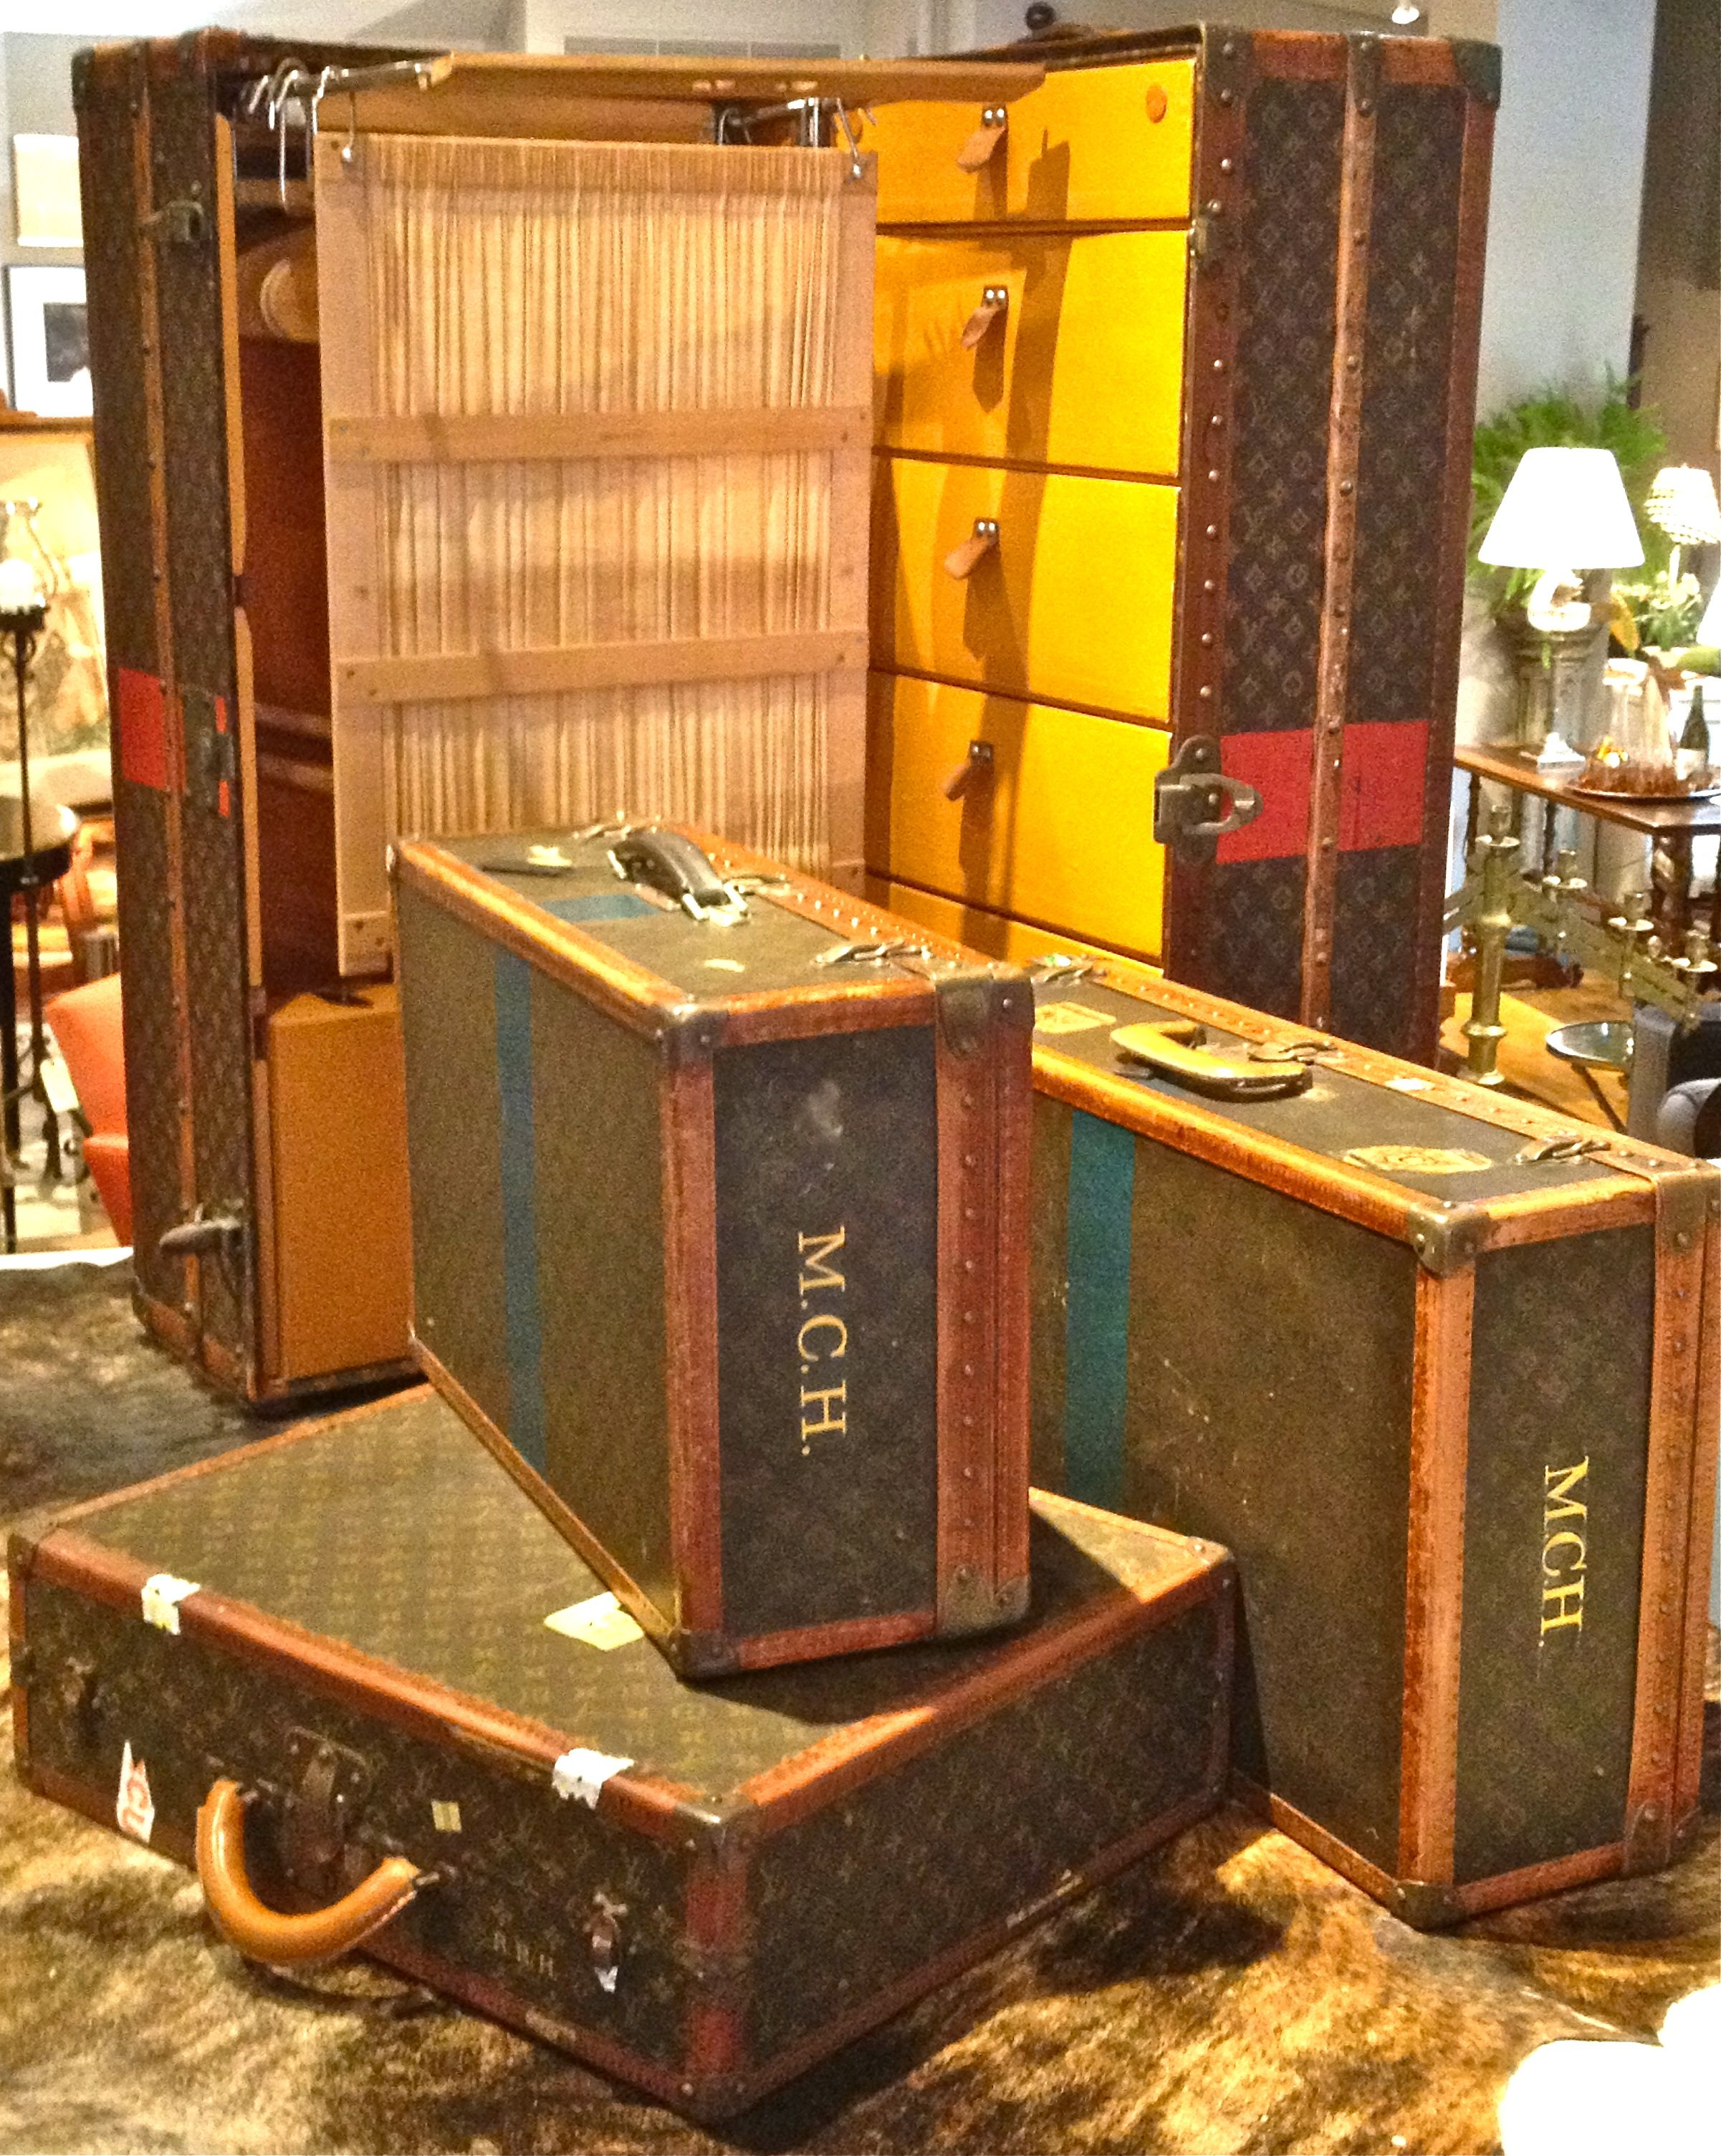 a15e22c423bd Vintage Louis Vuitton Luggage and Steamer Trunk Collection